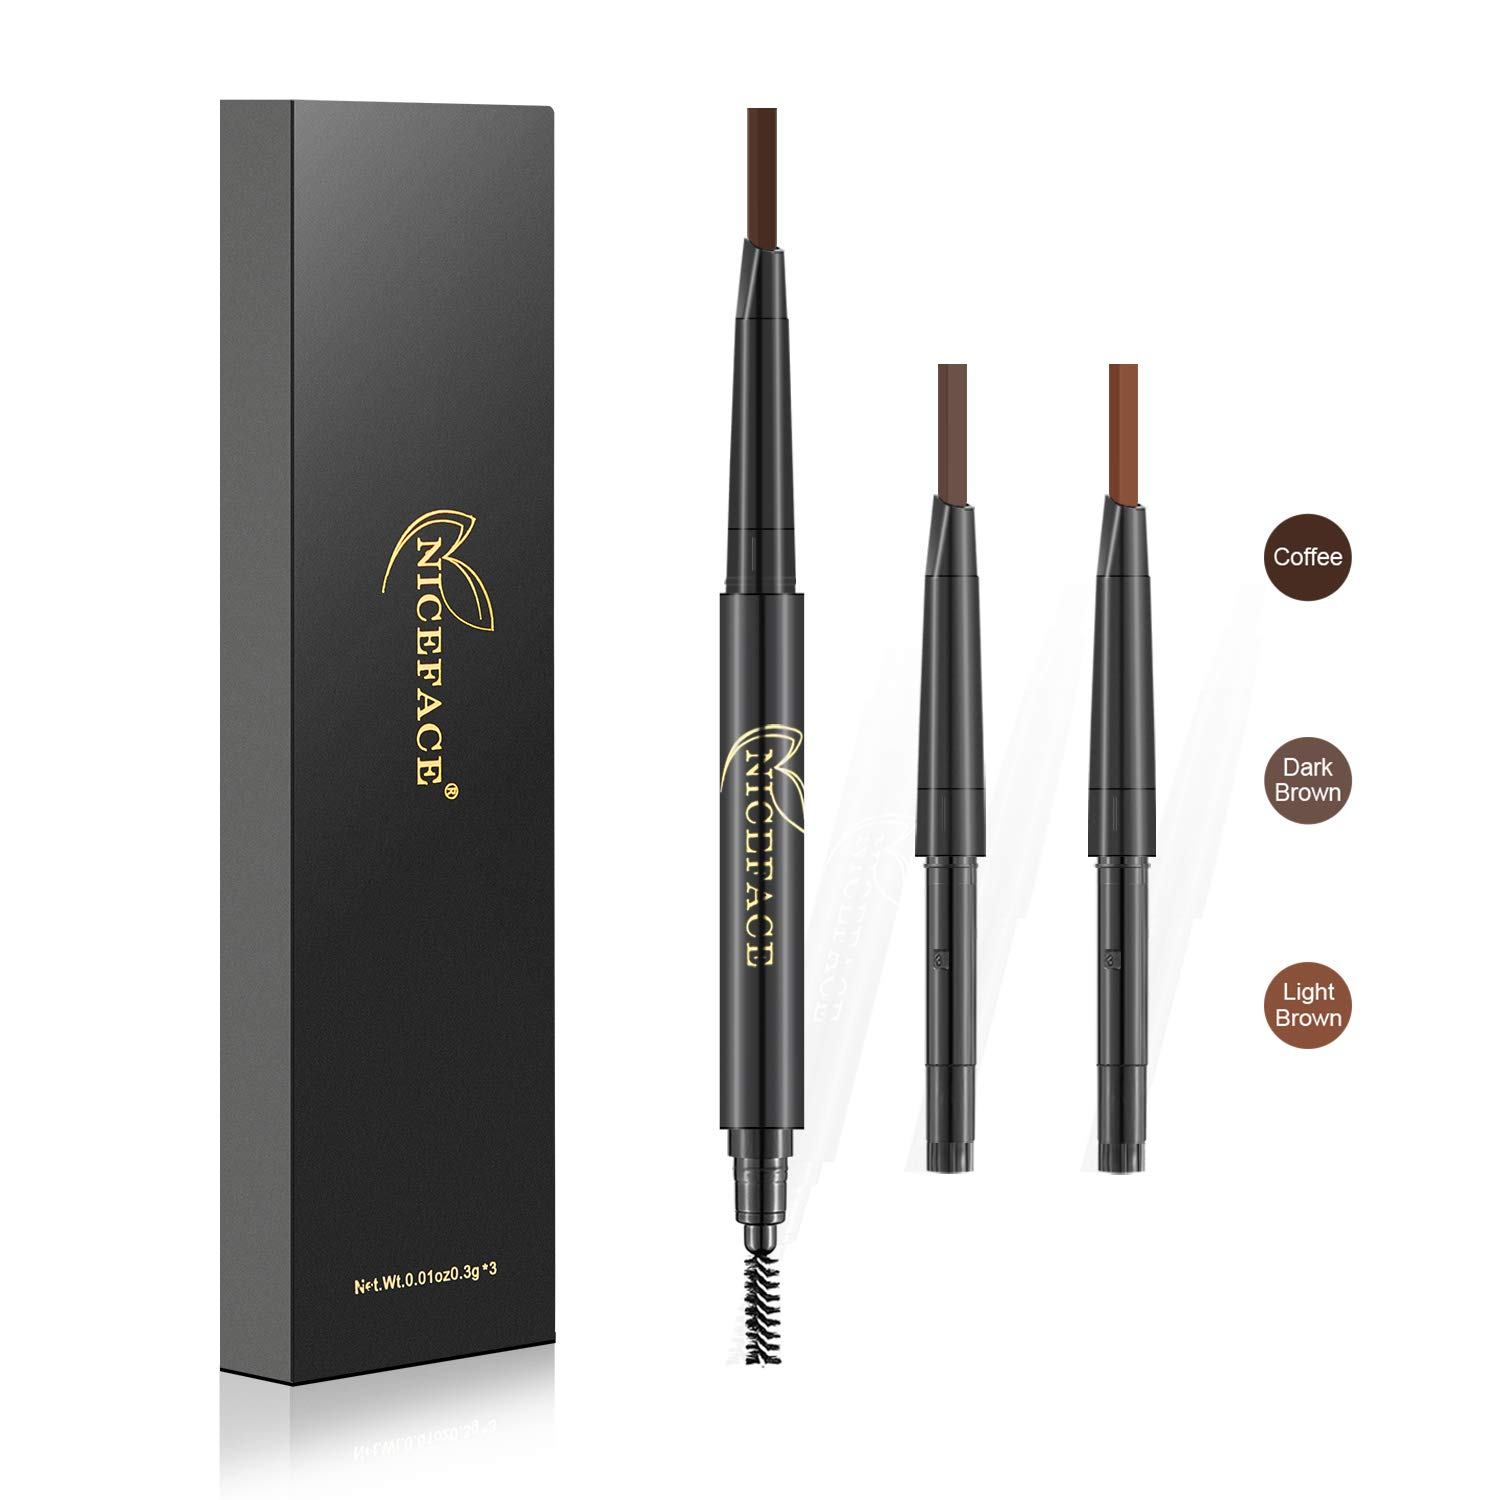 3-in-1 Eyebrow Pencil Brow Stylist Definer, Waterproof, Sweat-proof, Smudge-proof and Long-lasting Brow Filler, Dark Brown/Light Brown/Coffee, 0.01 oz